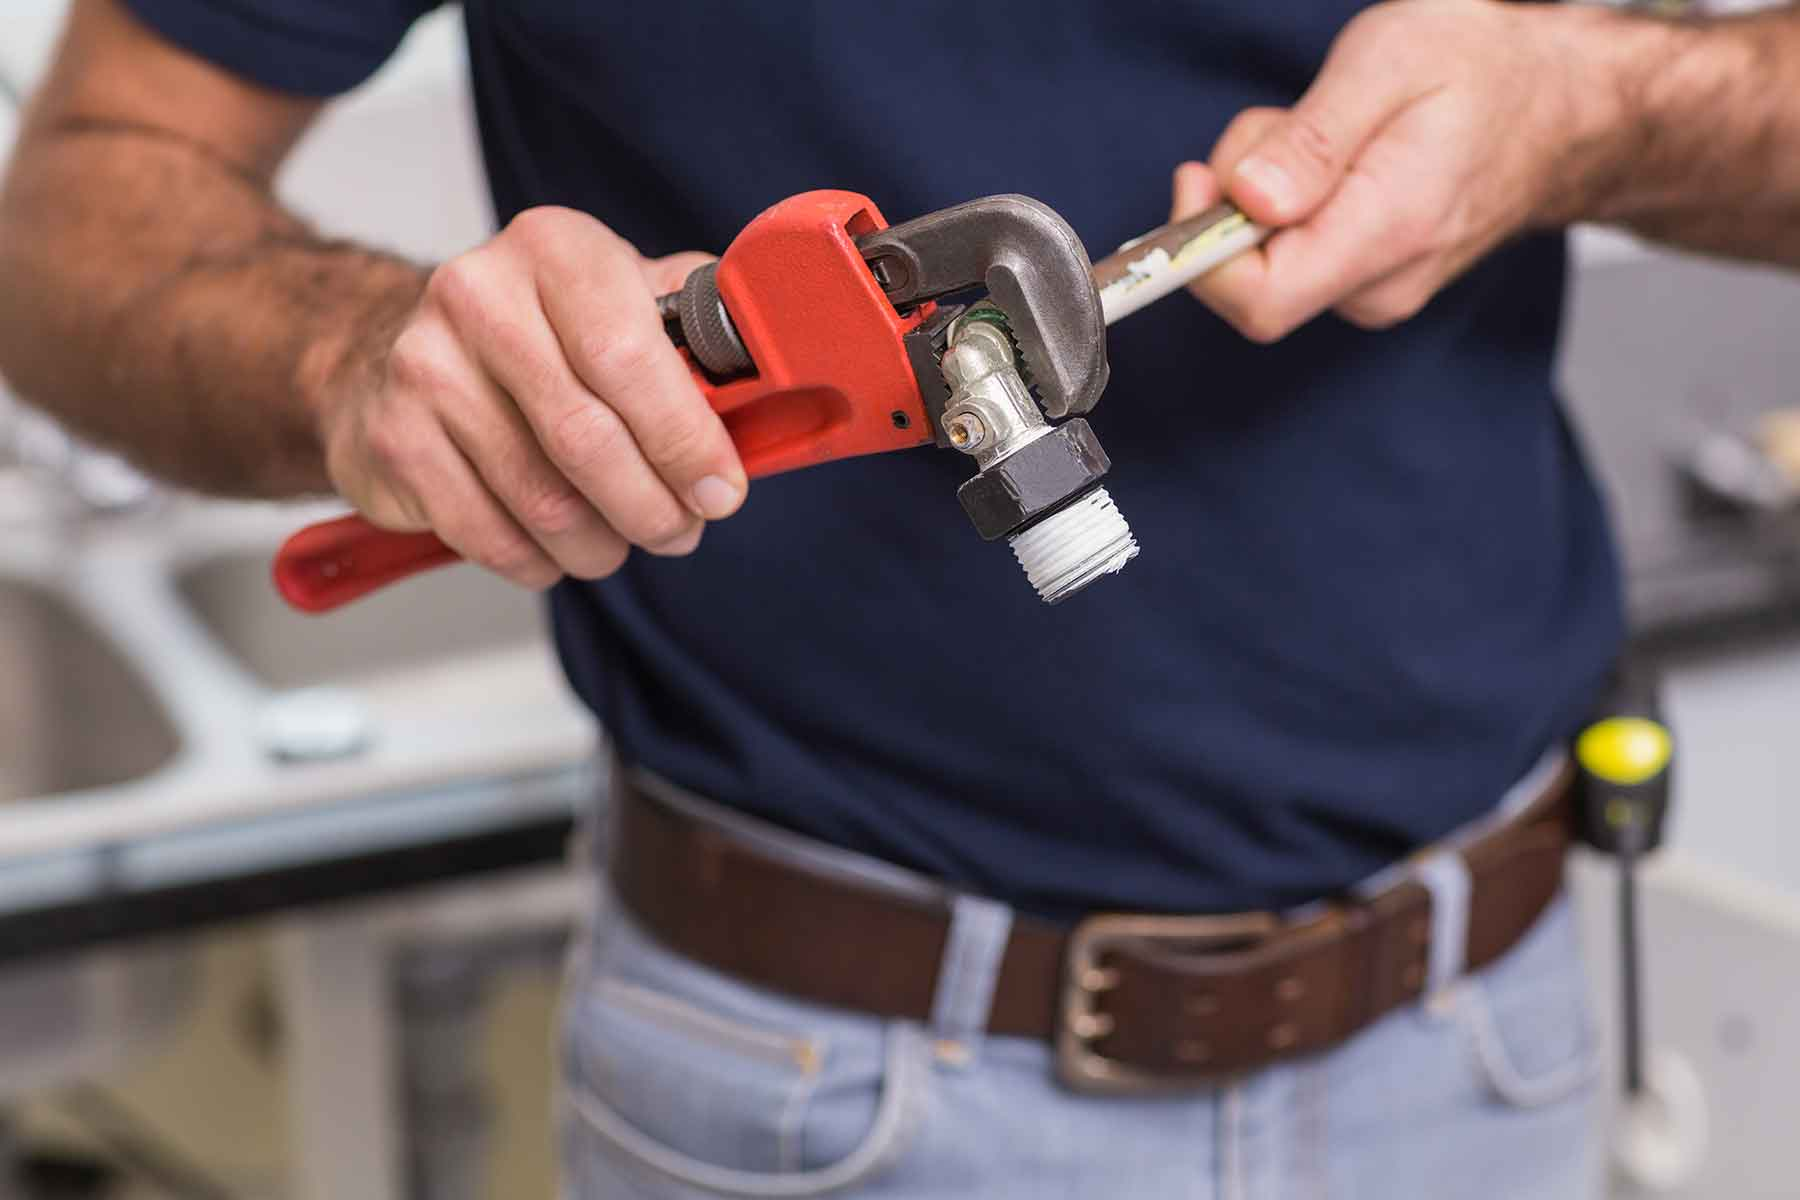 plumber-fixing-pipe-with-wrench-in-the-kitchen-PW55SHB.jpg